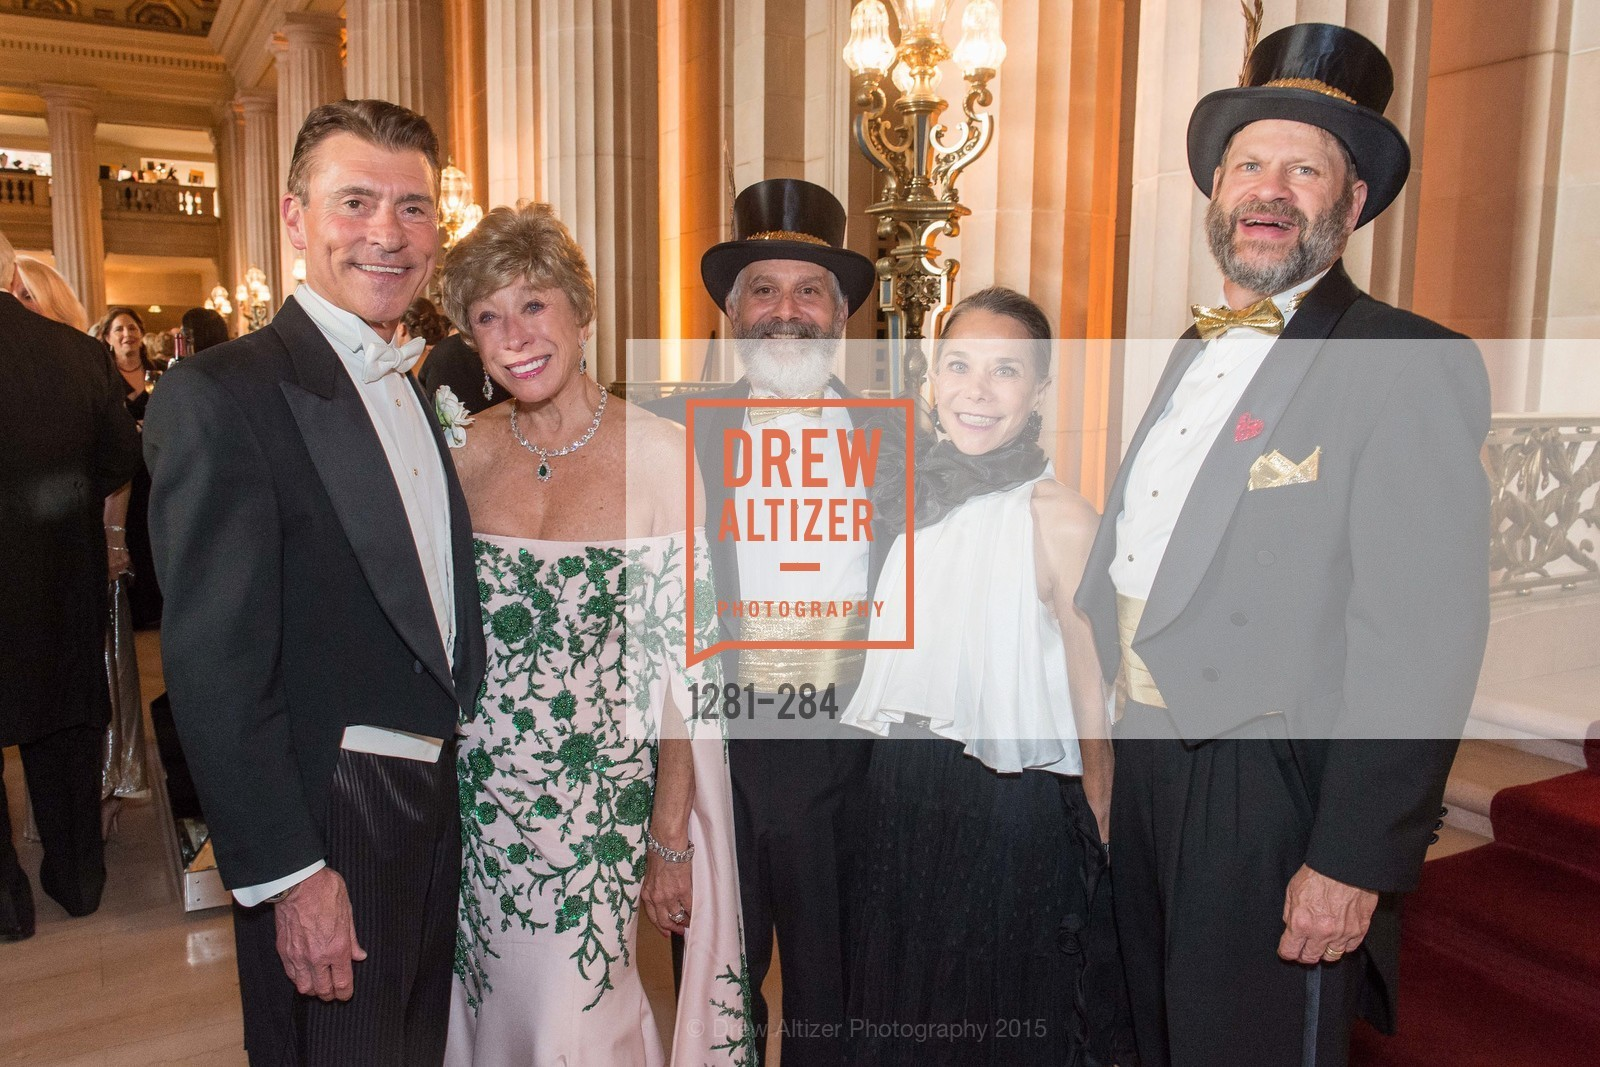 Robert Beadle, Maria Pitcairn, Randy Laroche, Julie Coplon, David Laudon, Opera Ball 2015: Moonlight & Music, War Memorial Opera House. 301 Van Ness Ave, September 11th, 2015,Drew Altizer, Drew Altizer Photography, full-service agency, private events, San Francisco photographer, photographer california